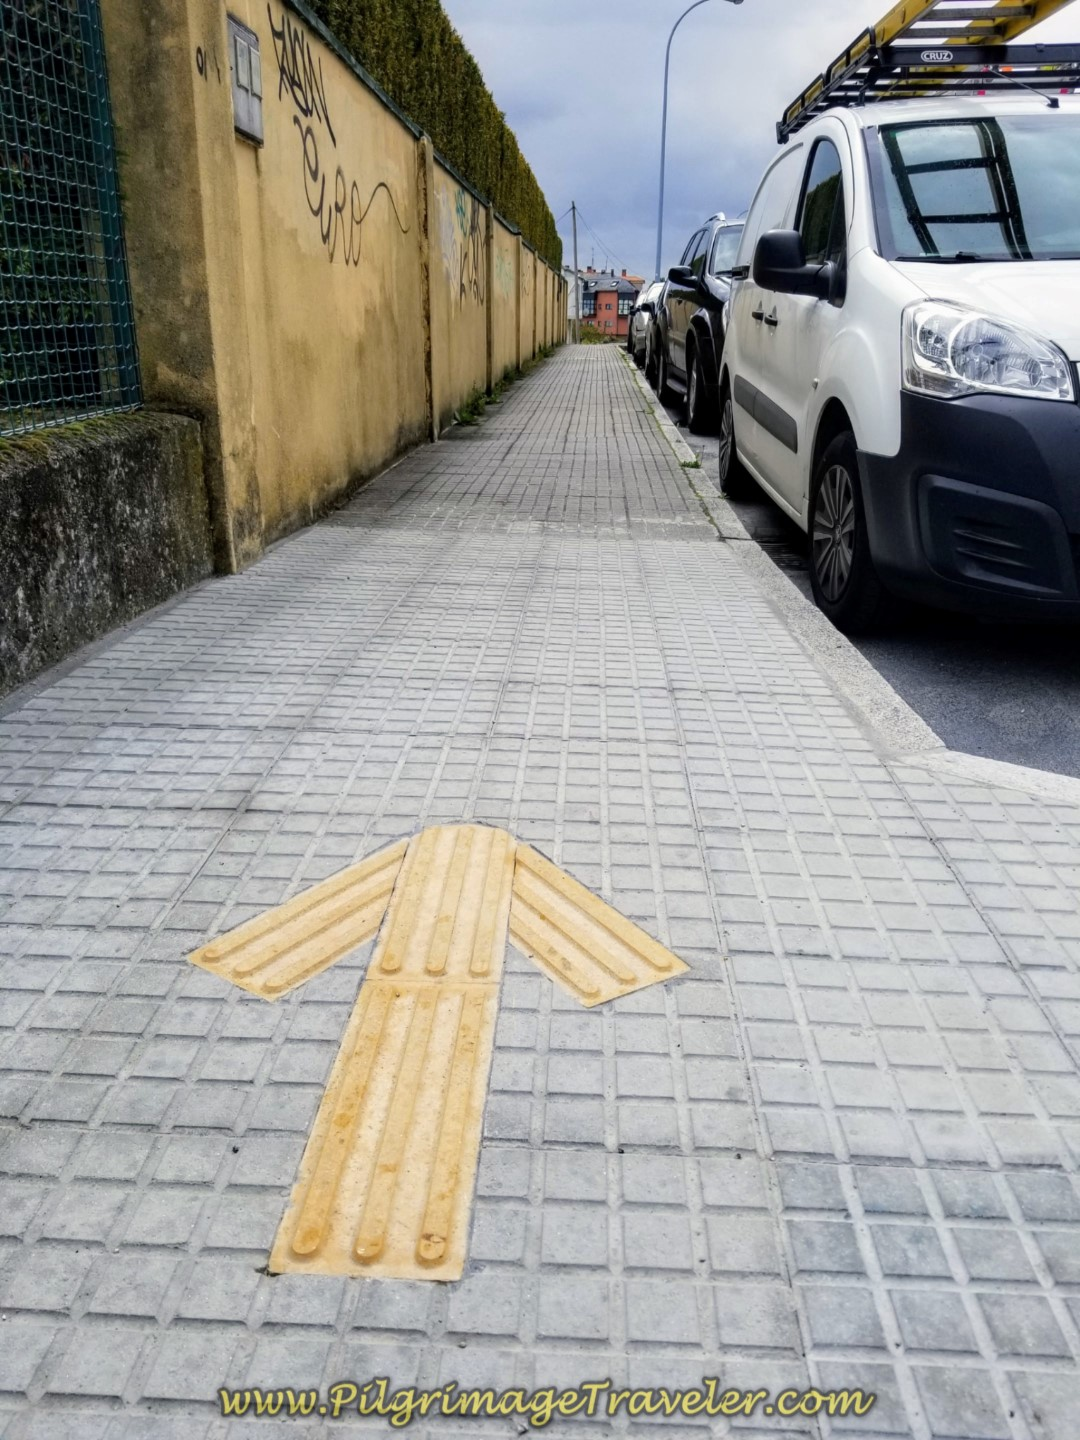 Yellow Arrow on Pavement